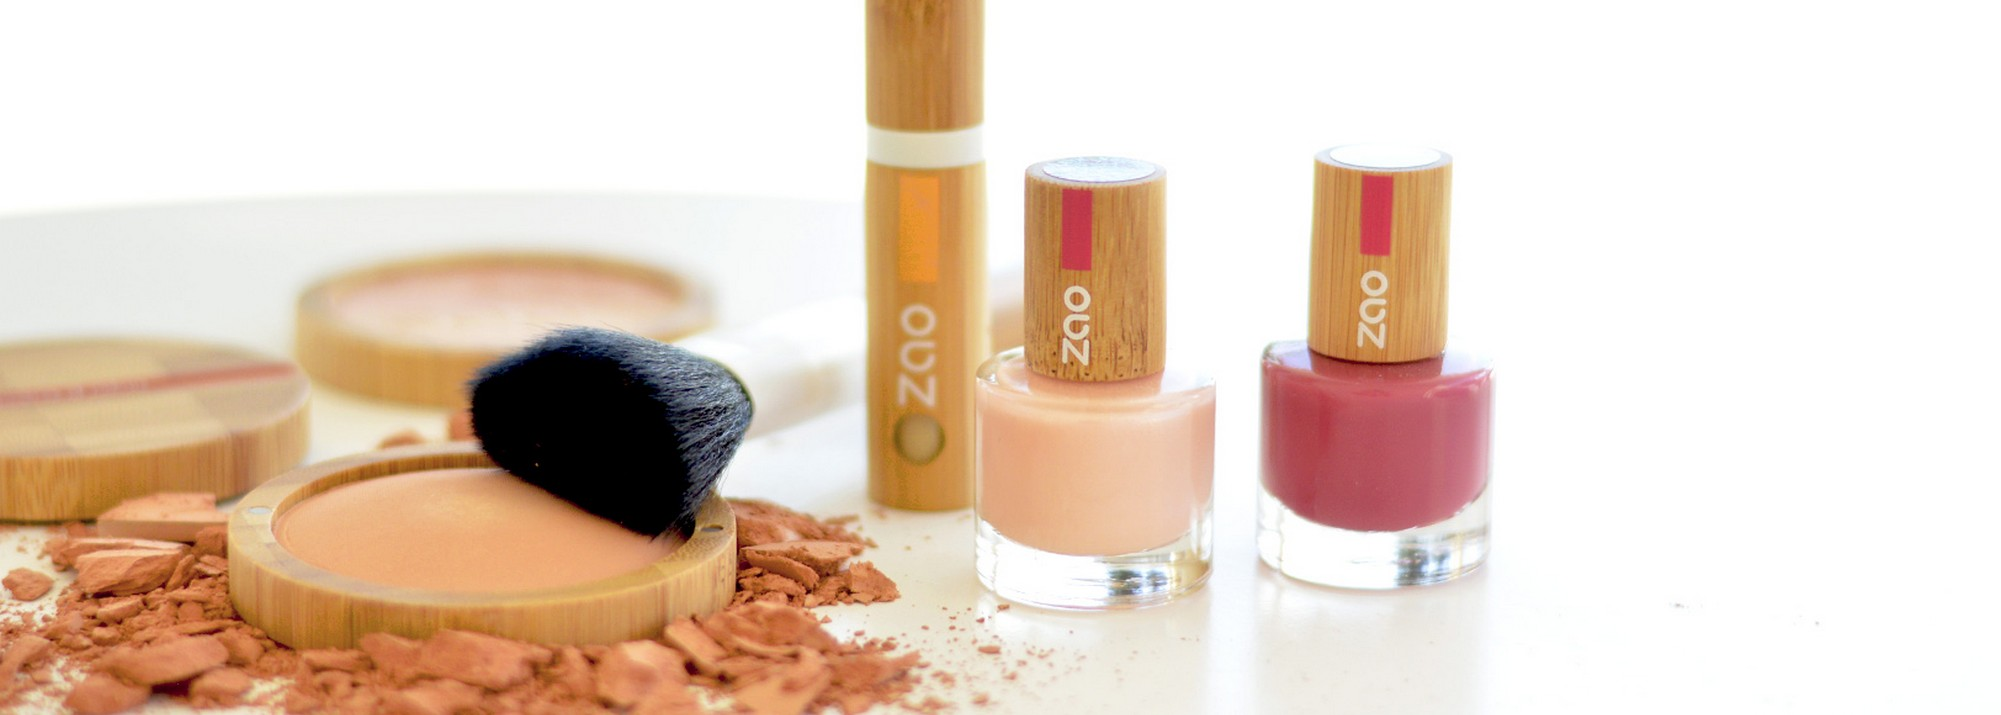 Zao, maquillage 100% naturel